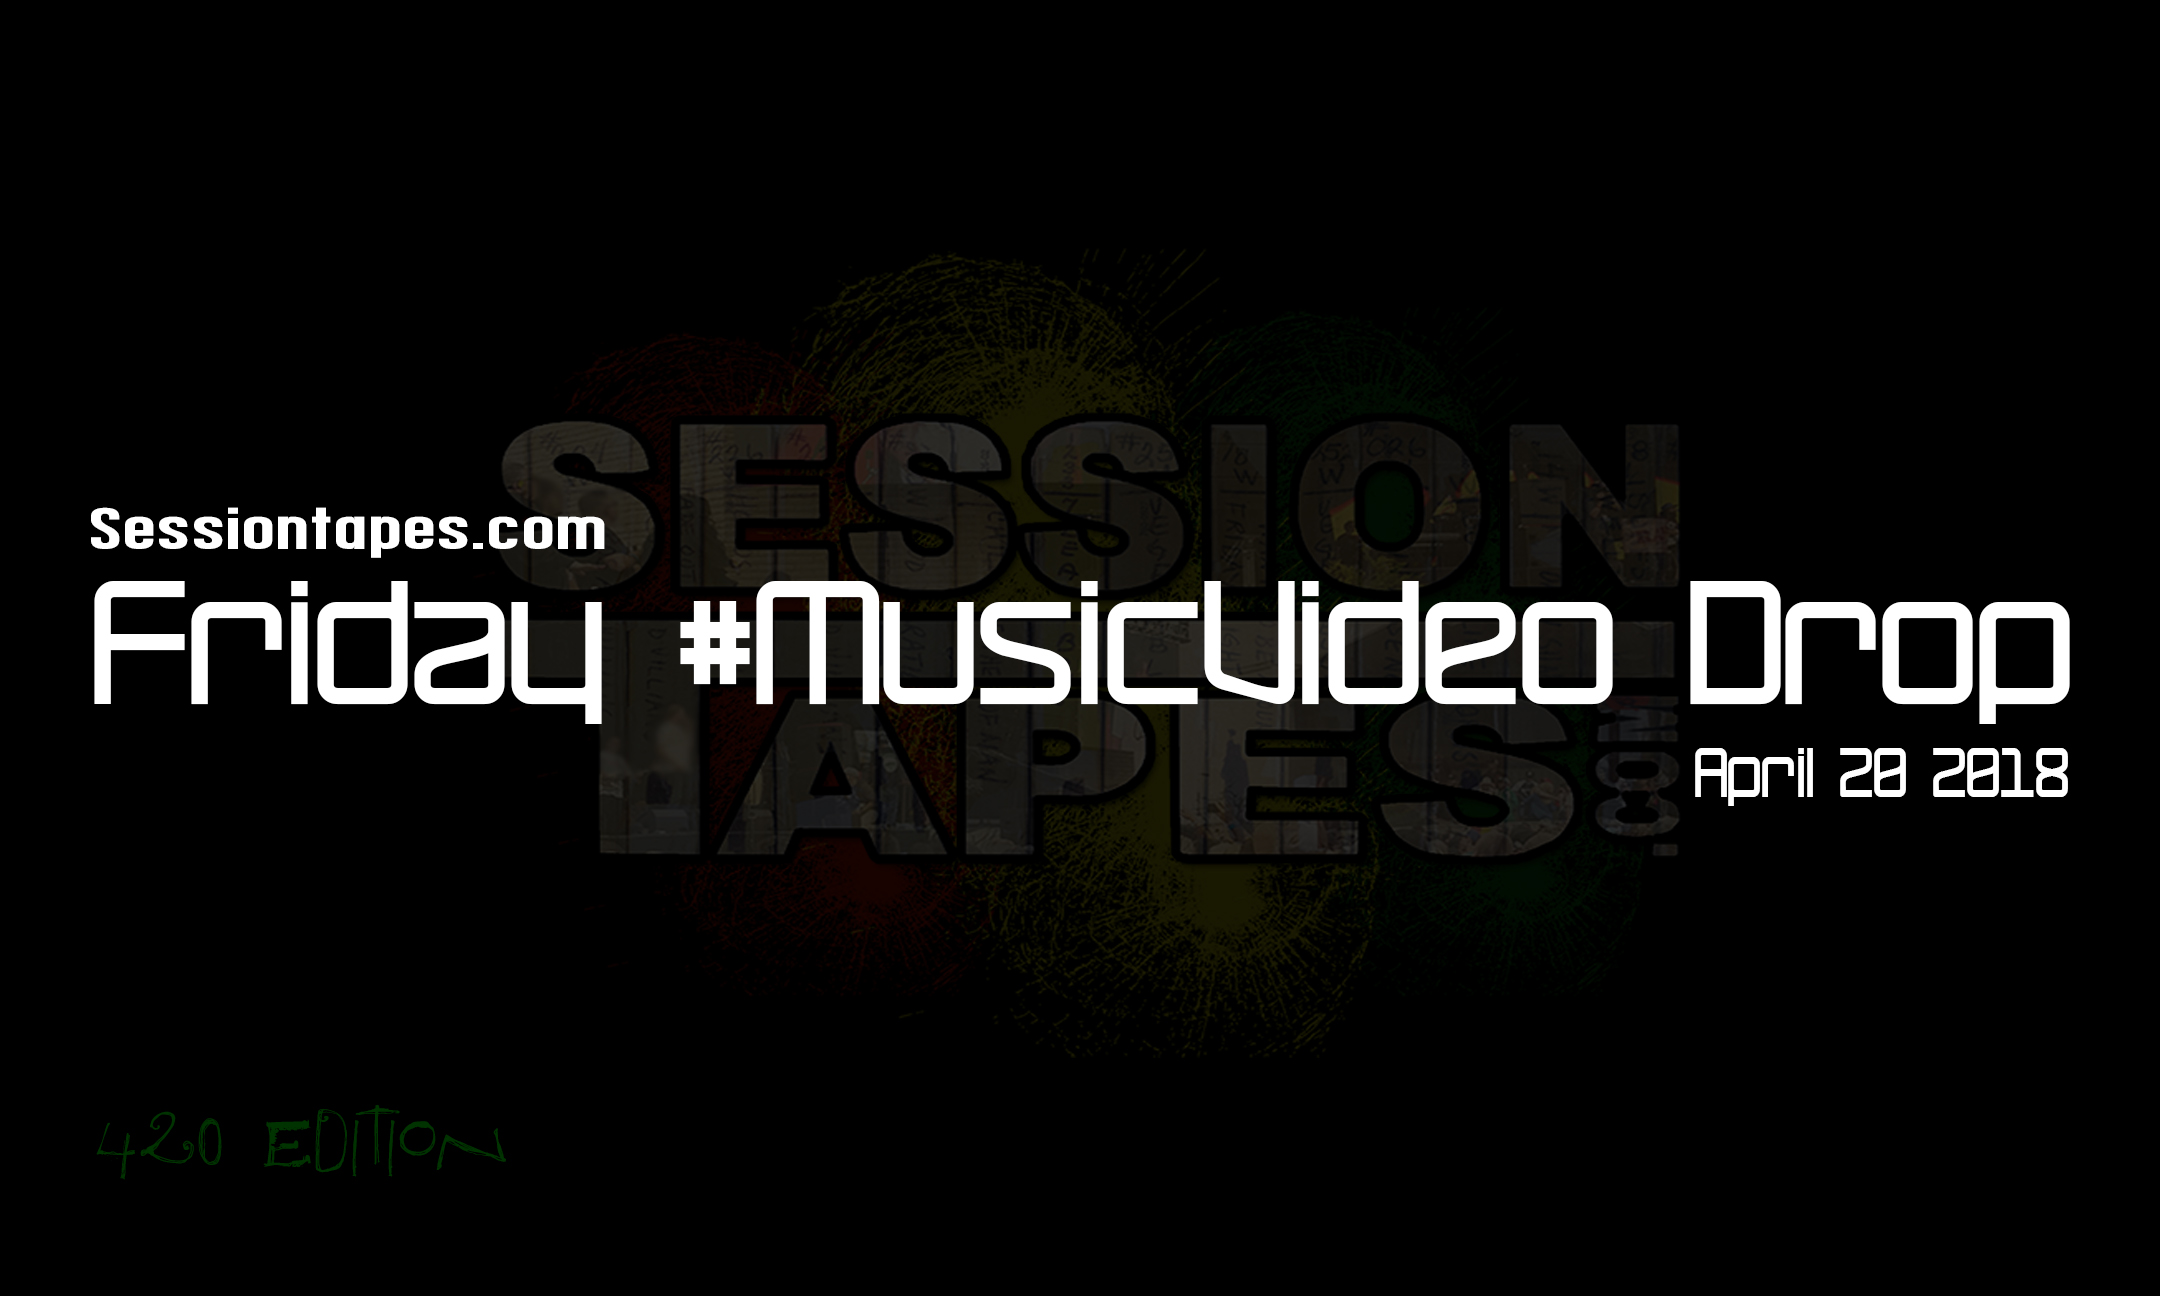 Friday #MusicVideo Drop 4-20-18 the 420 Edition featuring Snoop Dogg, Willy Nelson, Damian Marley, and more